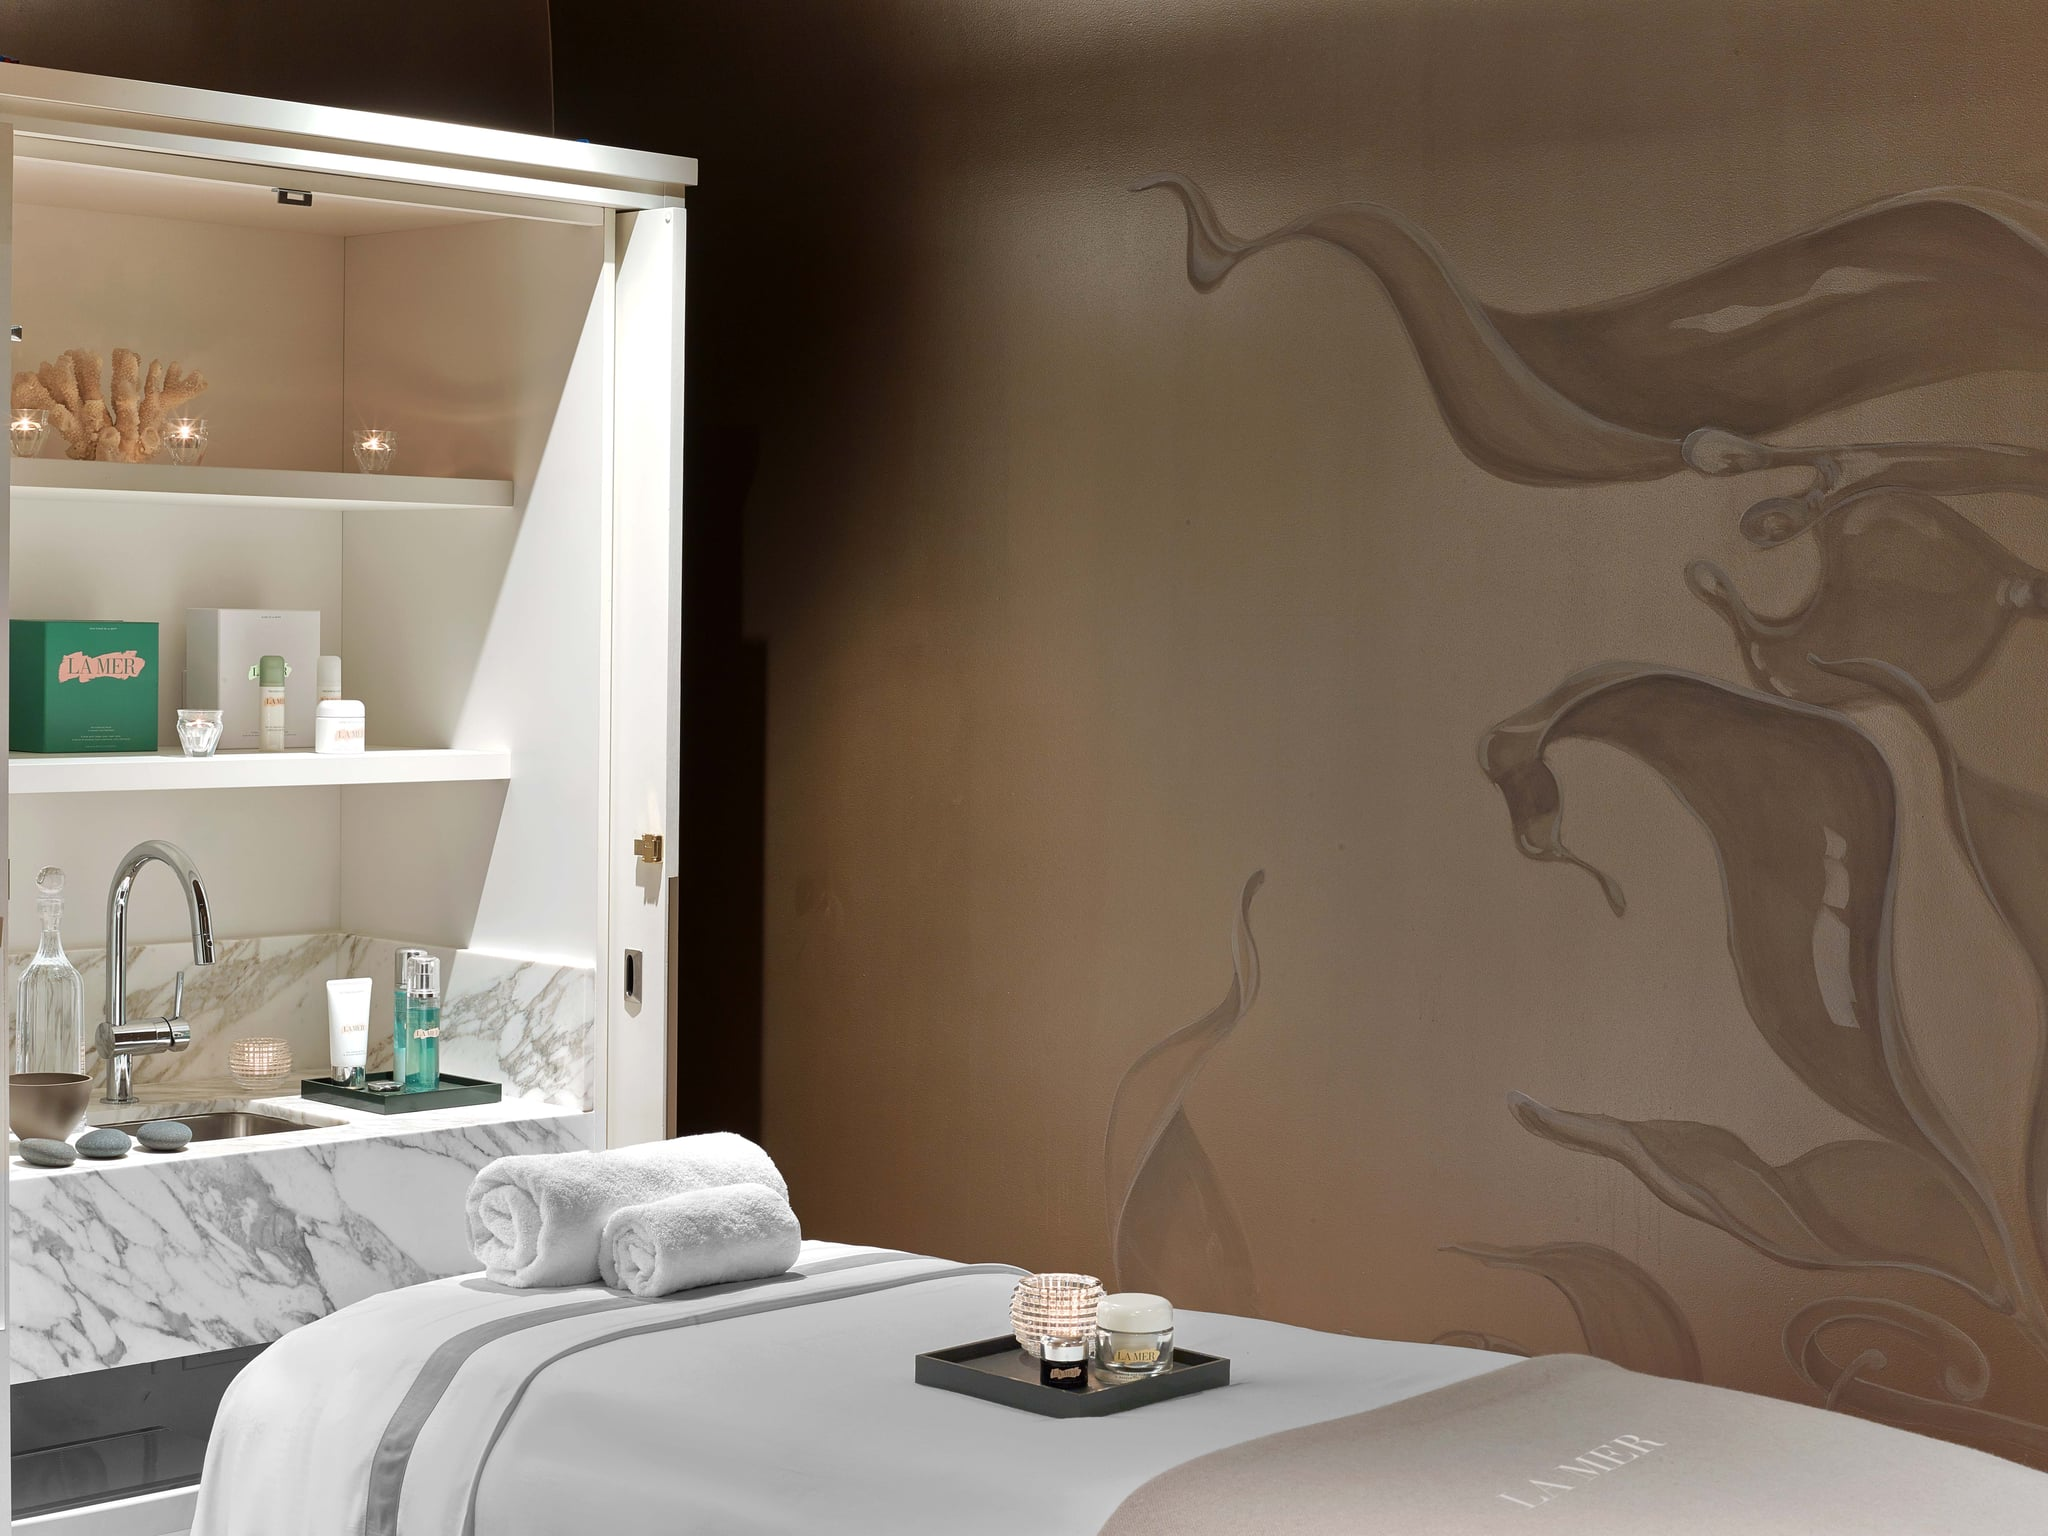 Spa de la mer in new york ny the most beautiful spas in for Salon baccarat